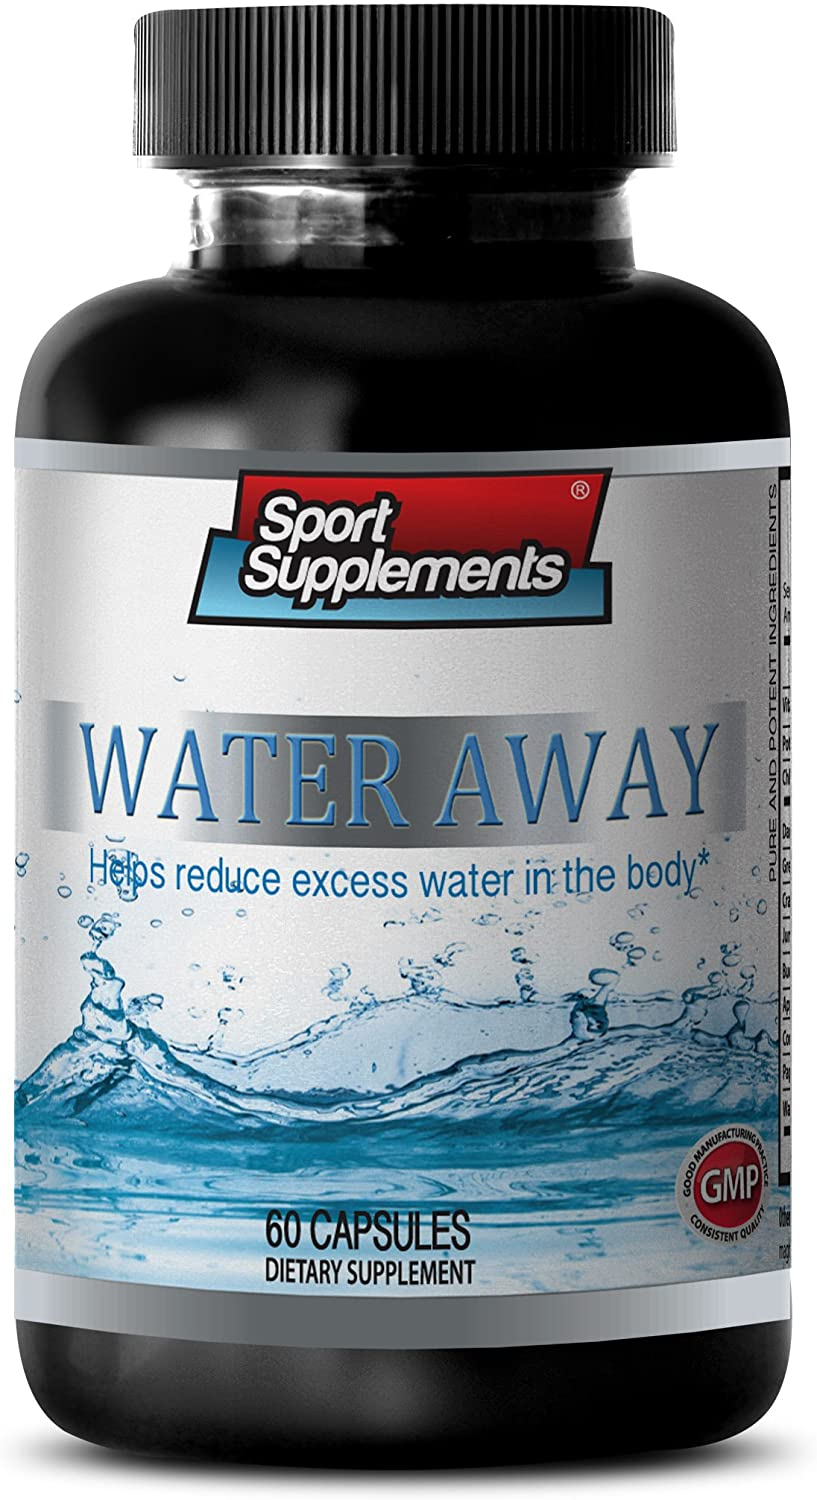 Urinary Health - Water Away Natural Diuretic Complex - Fat Burners for Weight Loss - 1 Bottle 60 Capsules